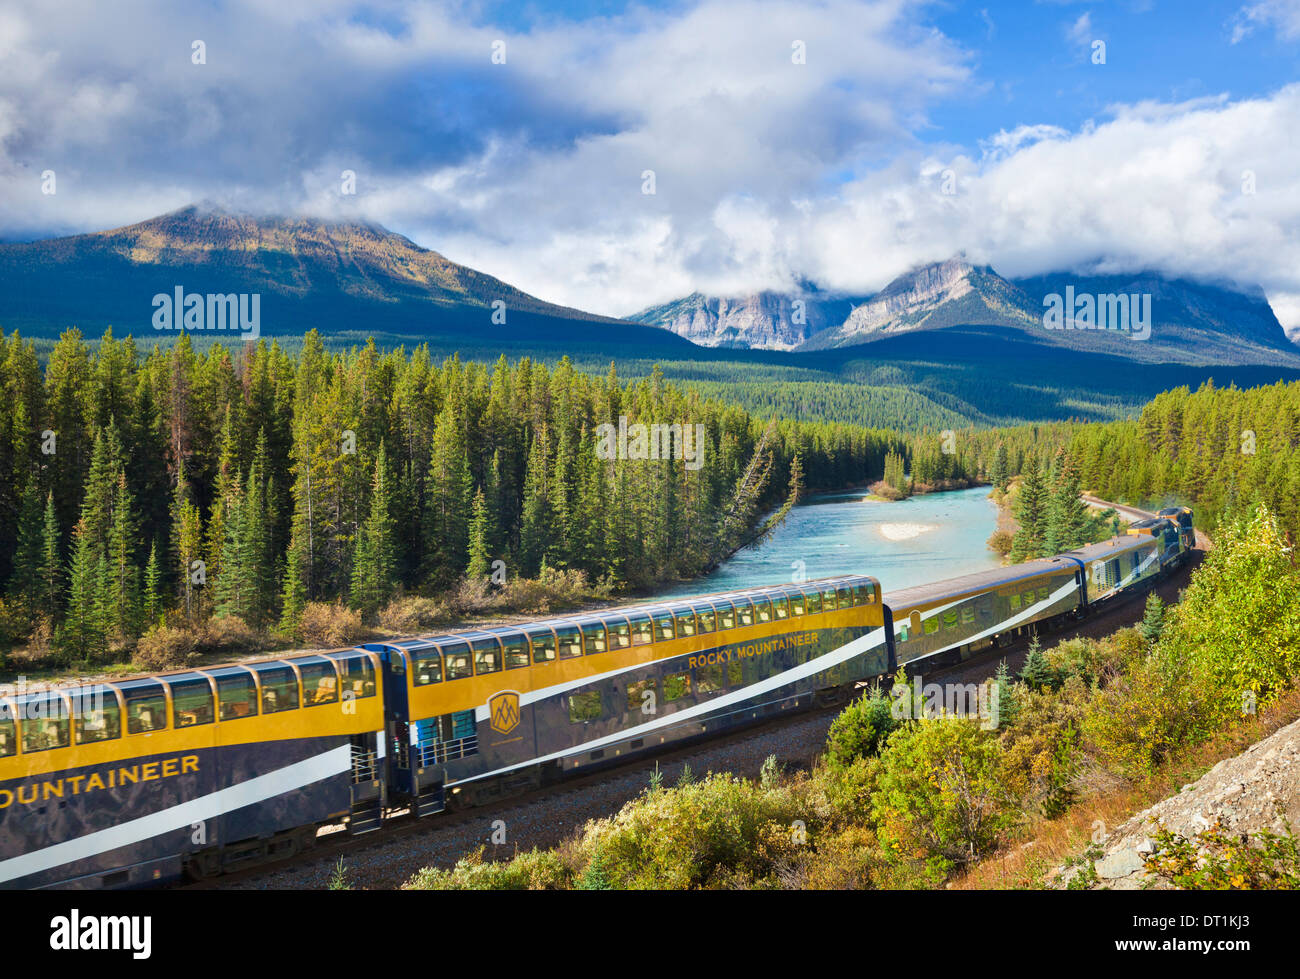 Rocky Mountaineer train at Morant's curve in the Canadian Rockies, Banff National Park, UNESCO Site, Alberta Canada - Stock Image